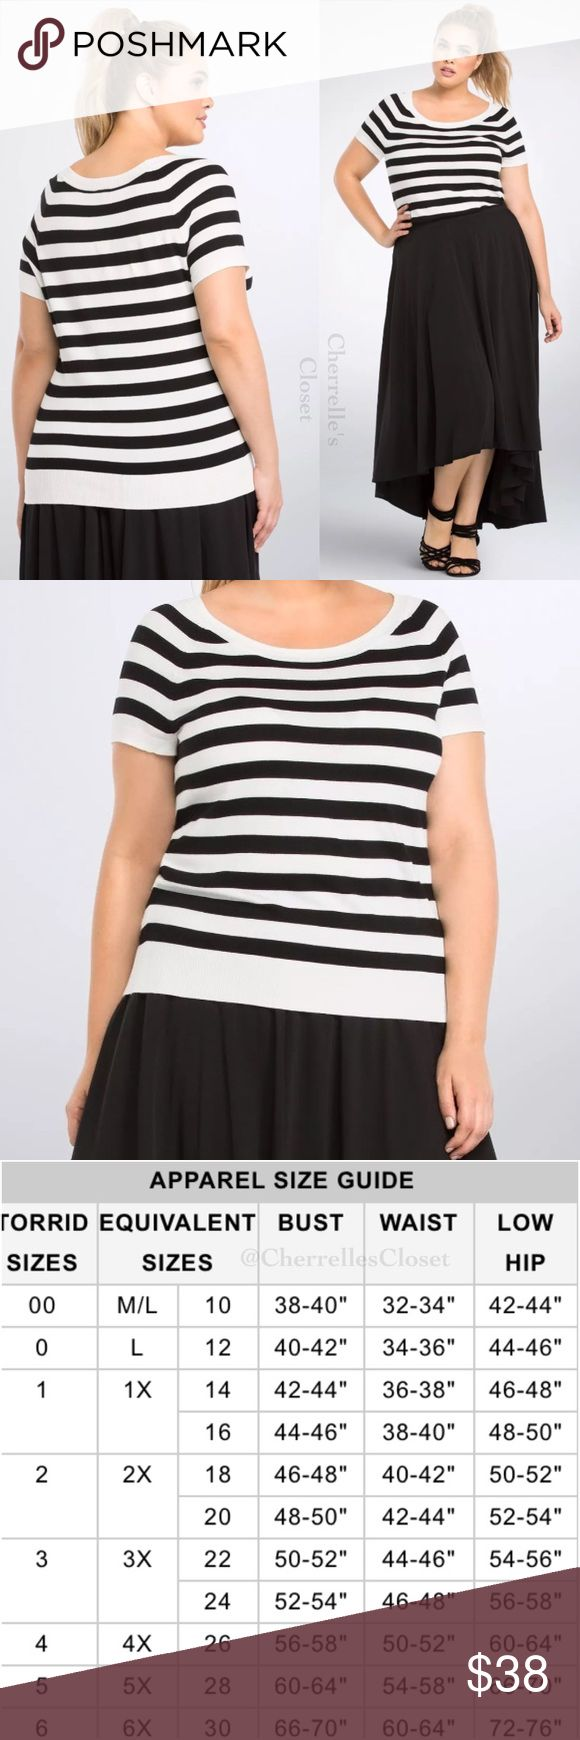 Torrid Striped Pullover Top Plus Size NWT Brand New With Tags Plus Size 5 28 5X  A Parisian-inspired pullover top that's sure to charm, this short sleeved black and white striped knit style is très chic. A form fit with ribbed trim, a stretchy ribbed collar creates  a deeper scoop neckline.  Rayon/nylon torrid Tops